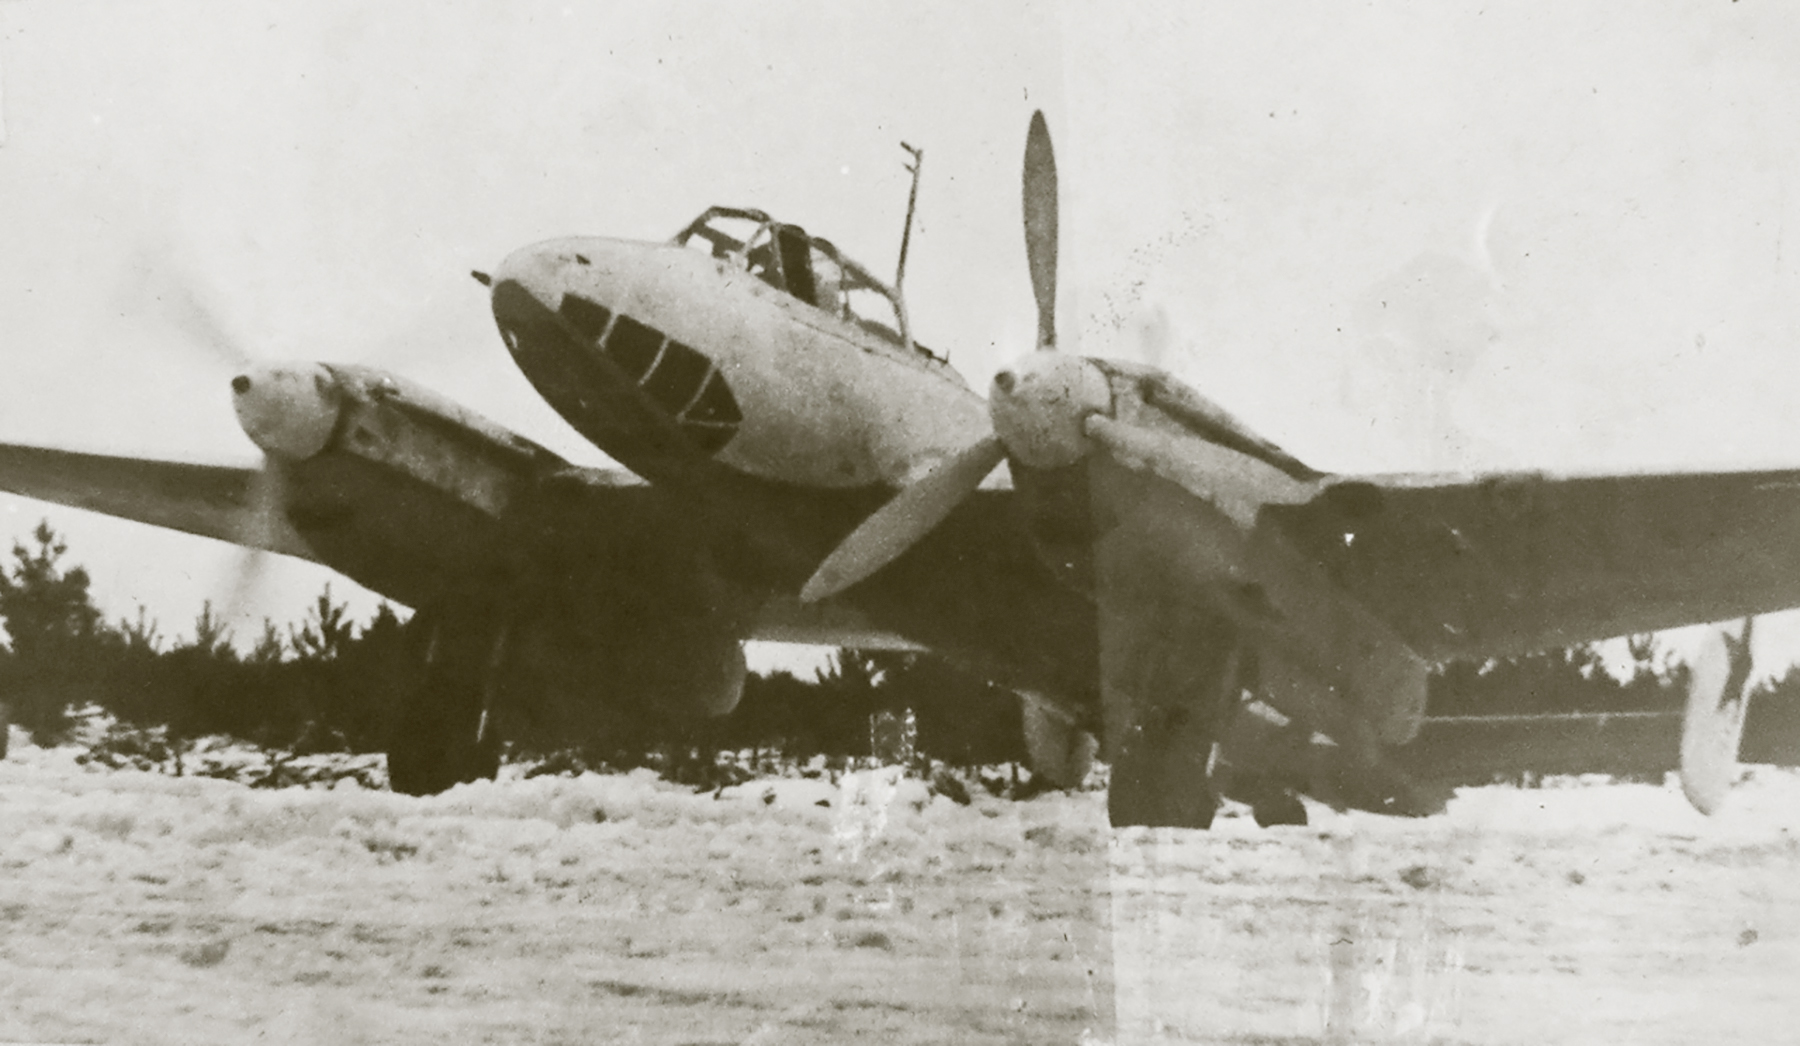 Petlyakov Pe 2 48GAPDr in winter camouflage prepares for its next mission 01